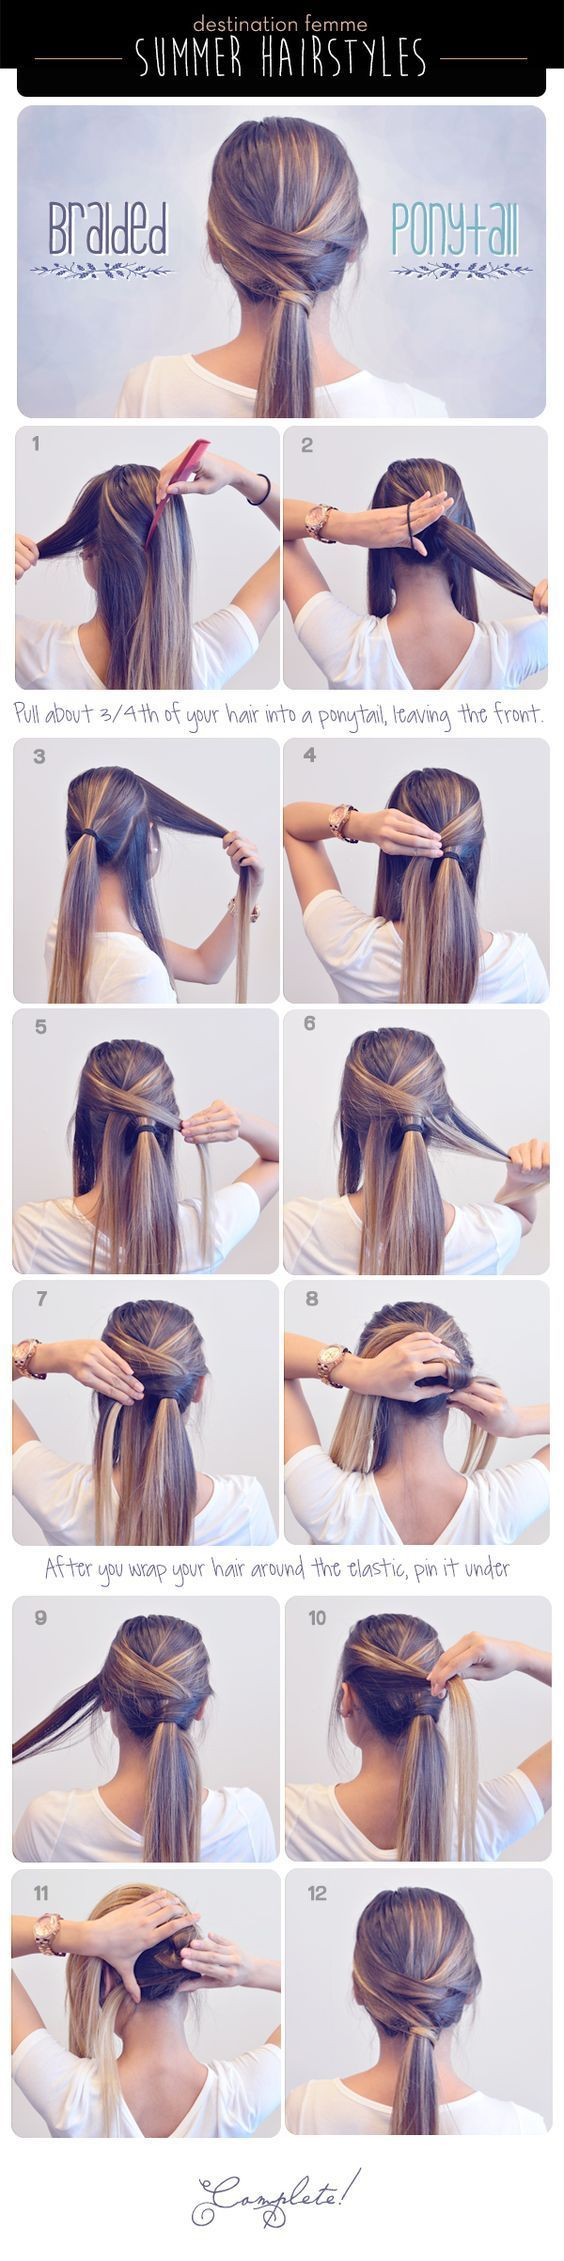 Summer Braided Hair Tutorial